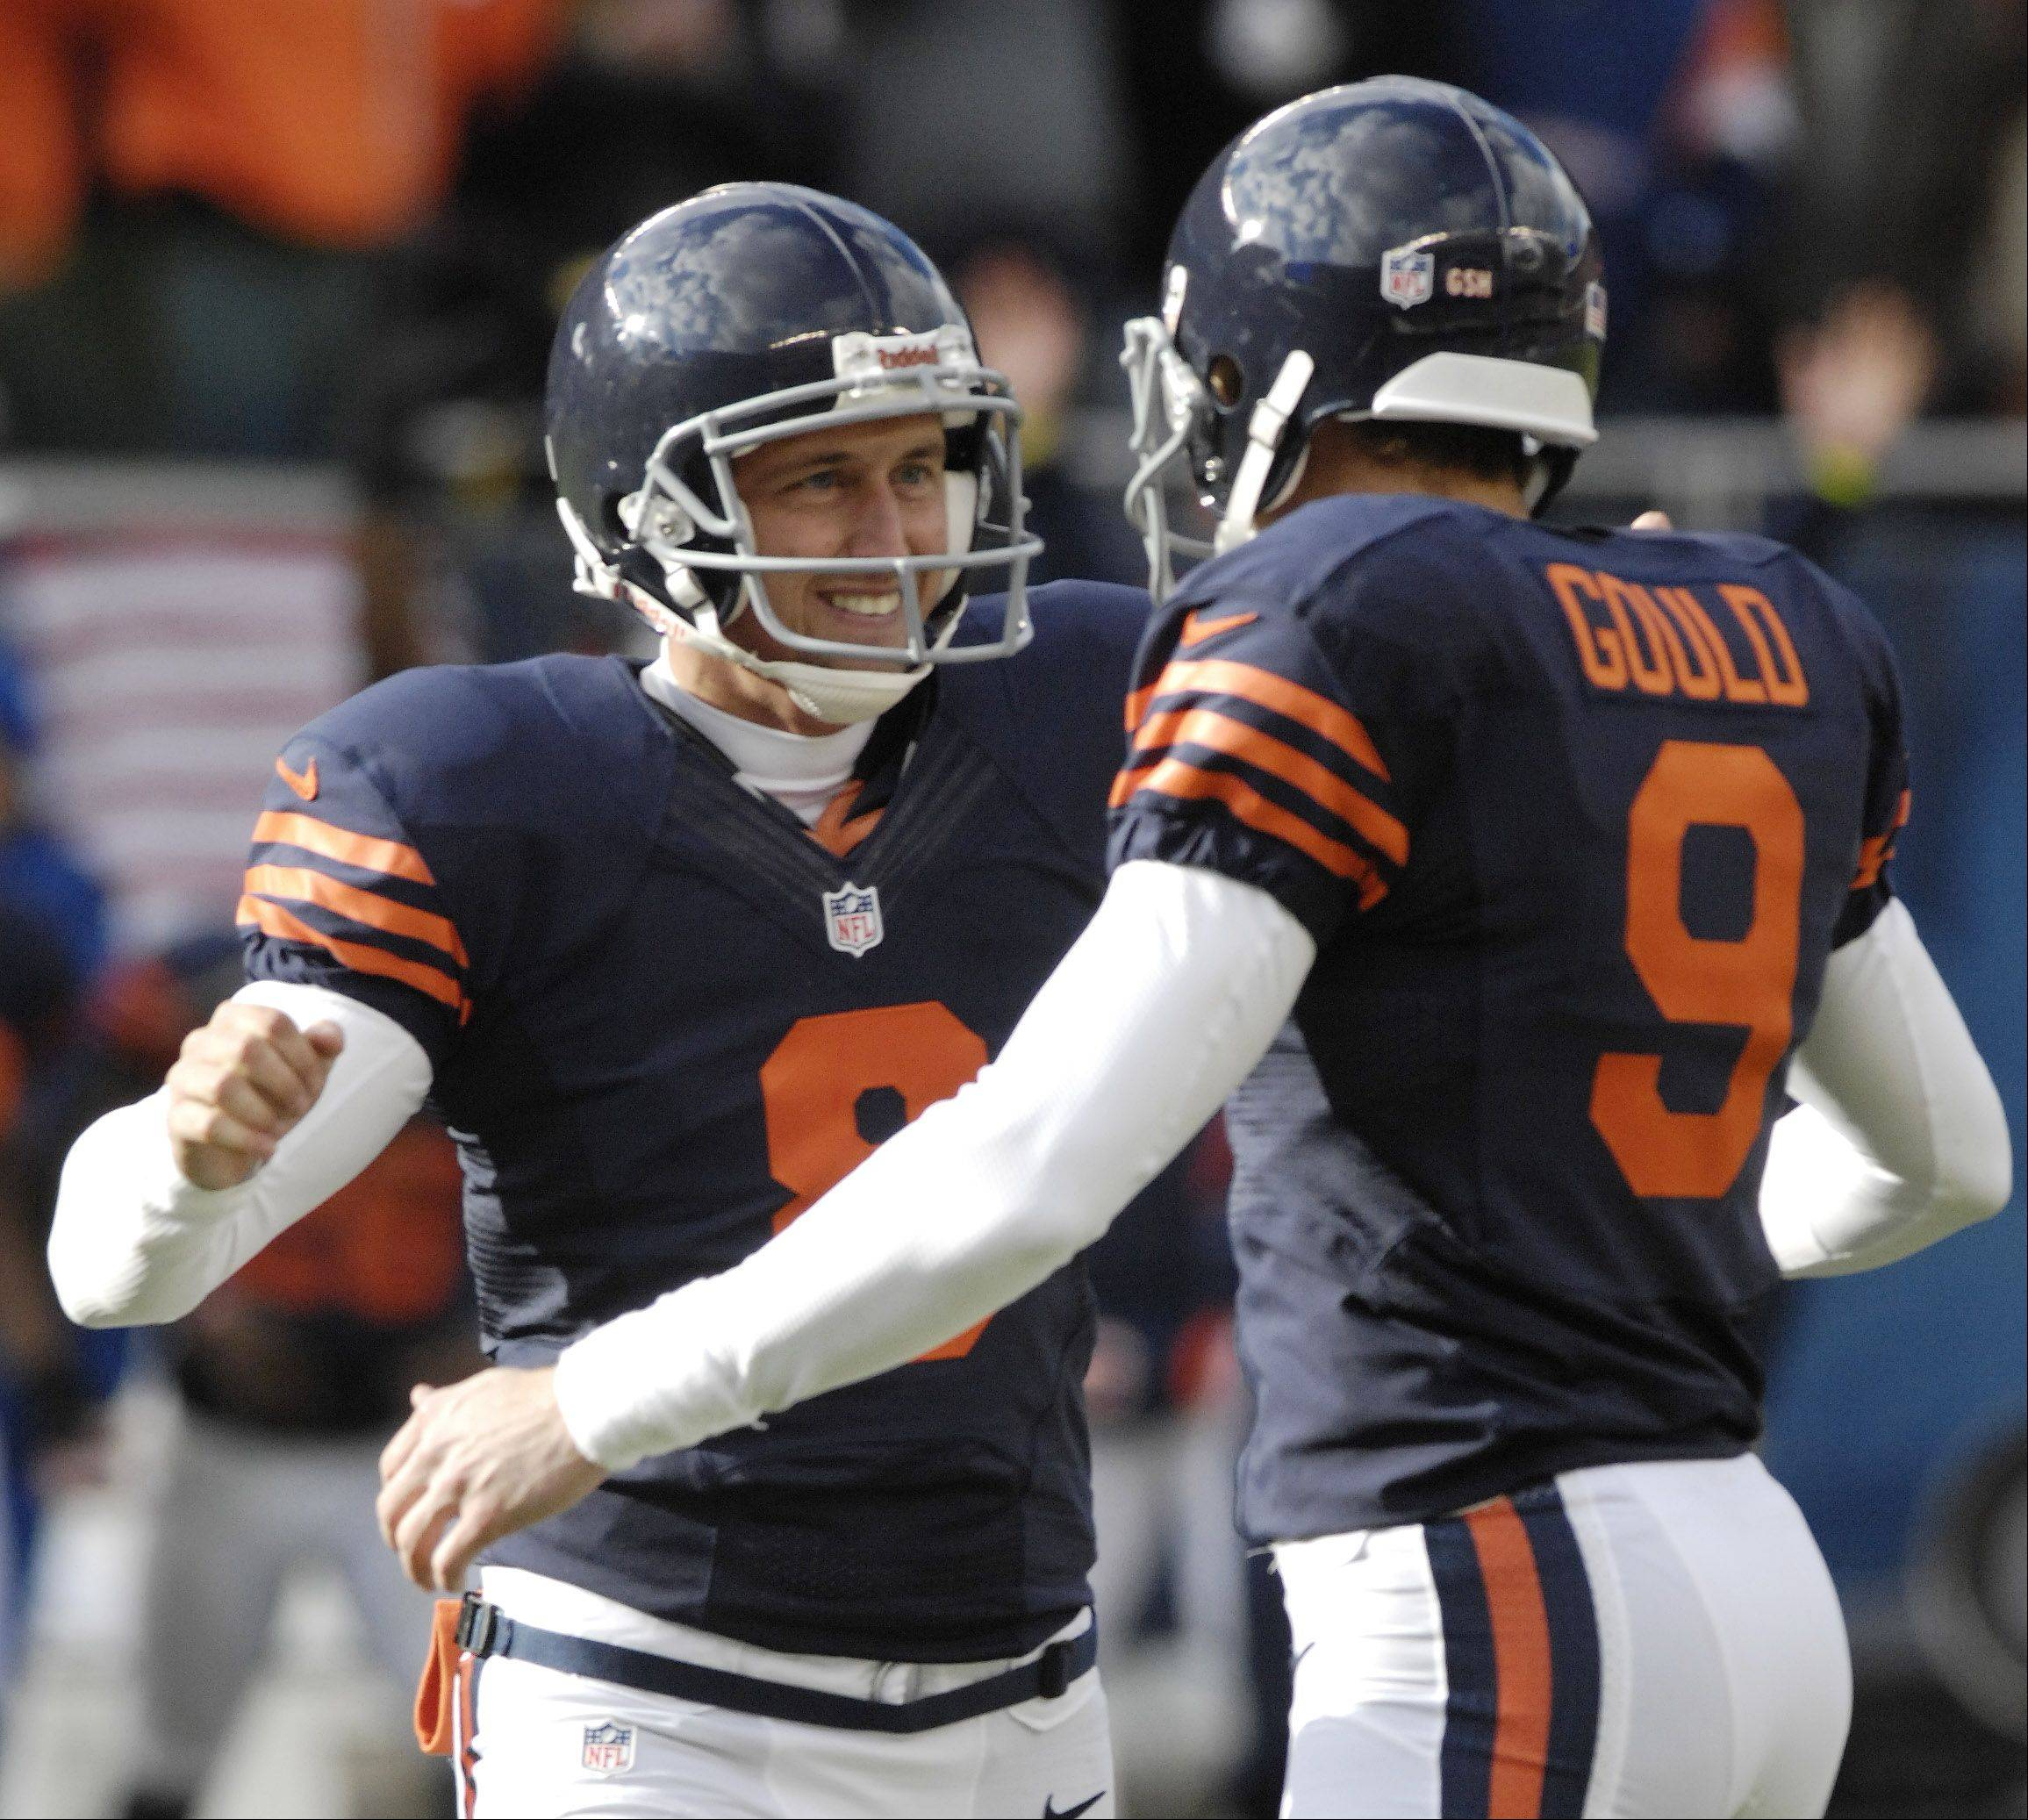 Chicago Bears kicker Robbie Gould, right, celebrates his game-winning field goal with holder Adam Podlesh during Sunday's game at Soldier Field.